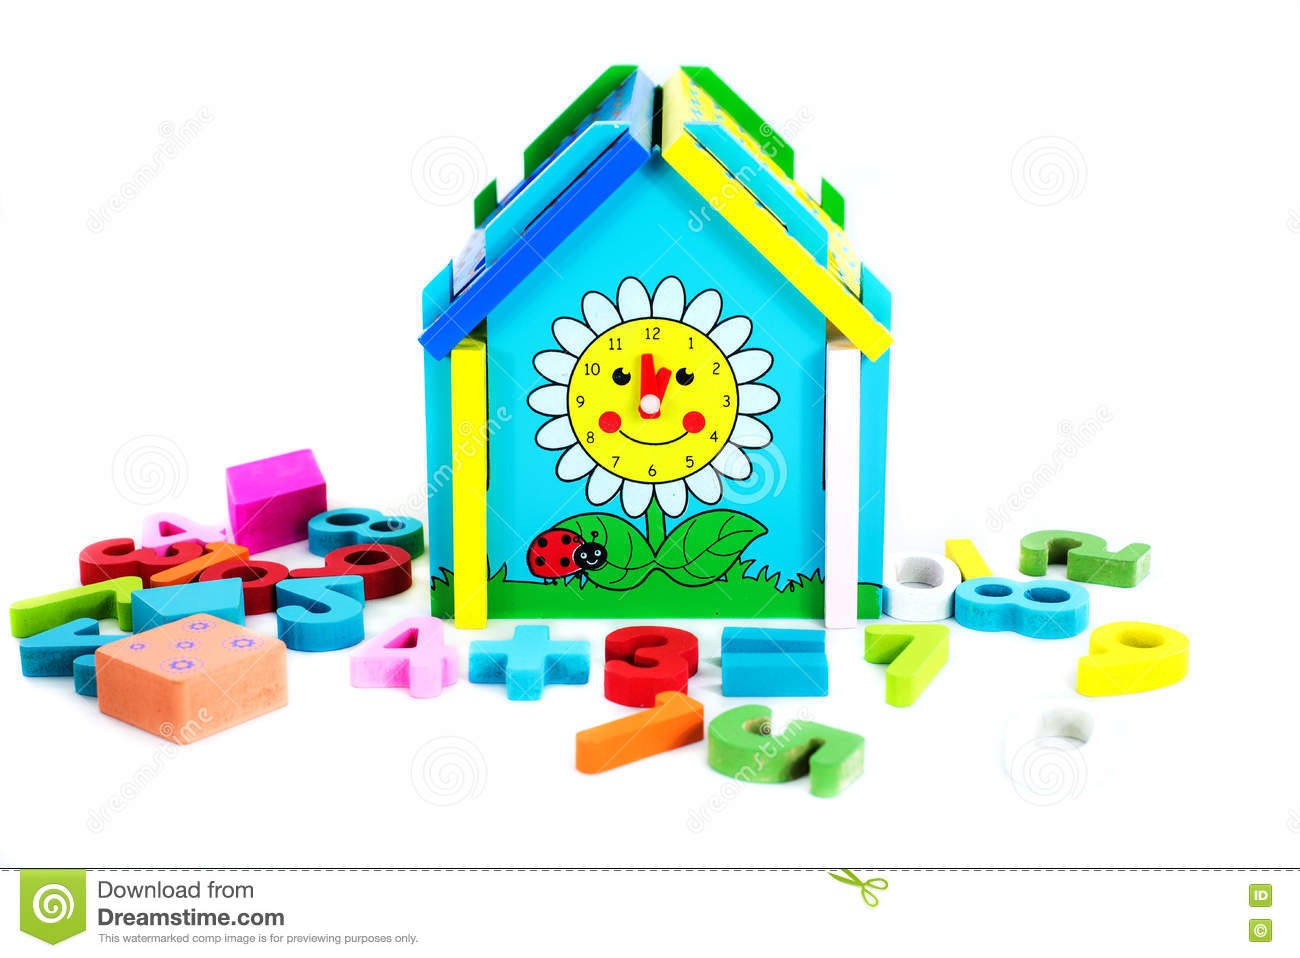 Brain Development Toys : Toys for children jigsaw geometry royalty free stock